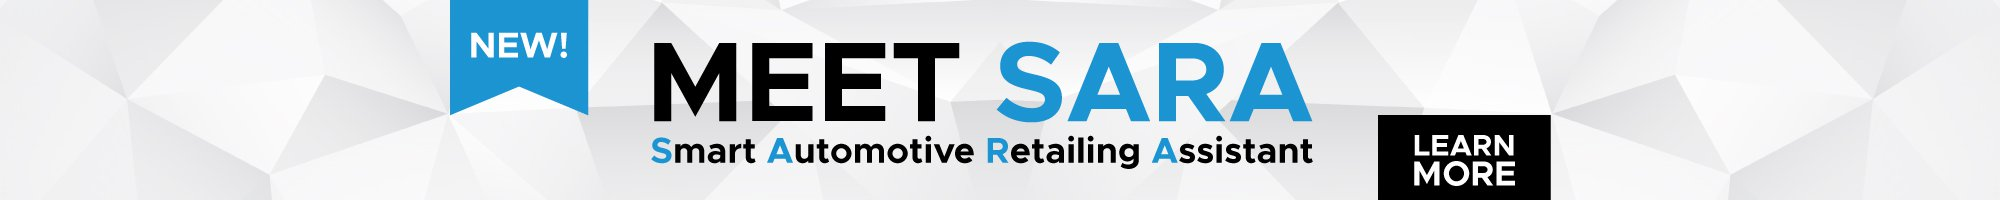 Meet SARA: Smart Automotive Retailing Assistant